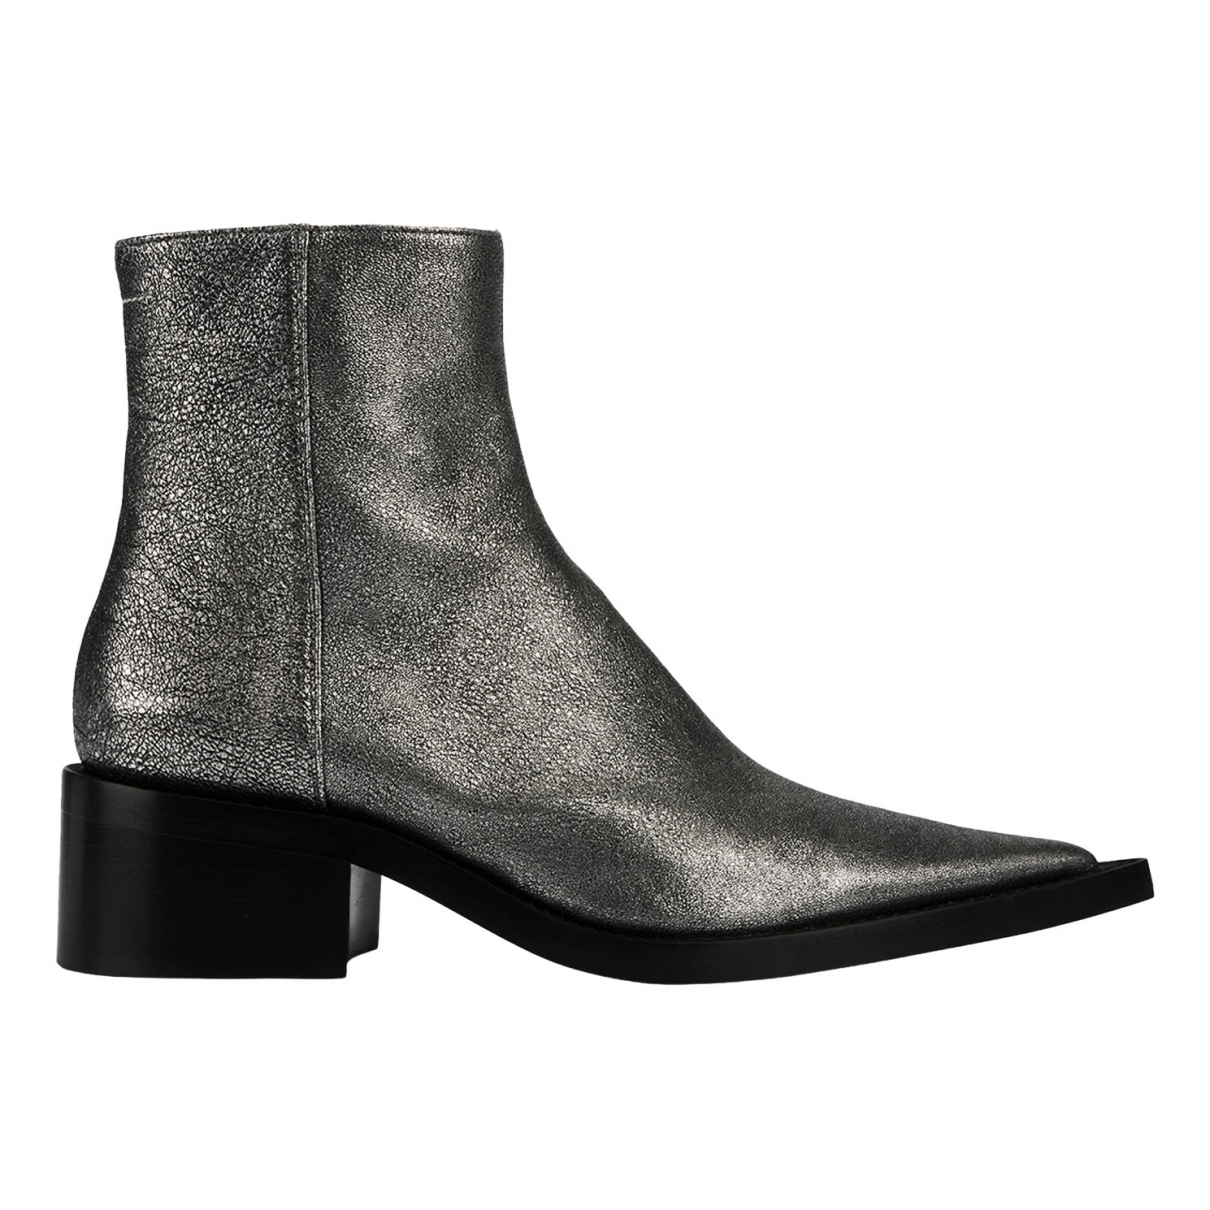 Mm6 N Silver Leather Boots for Women 6 UK